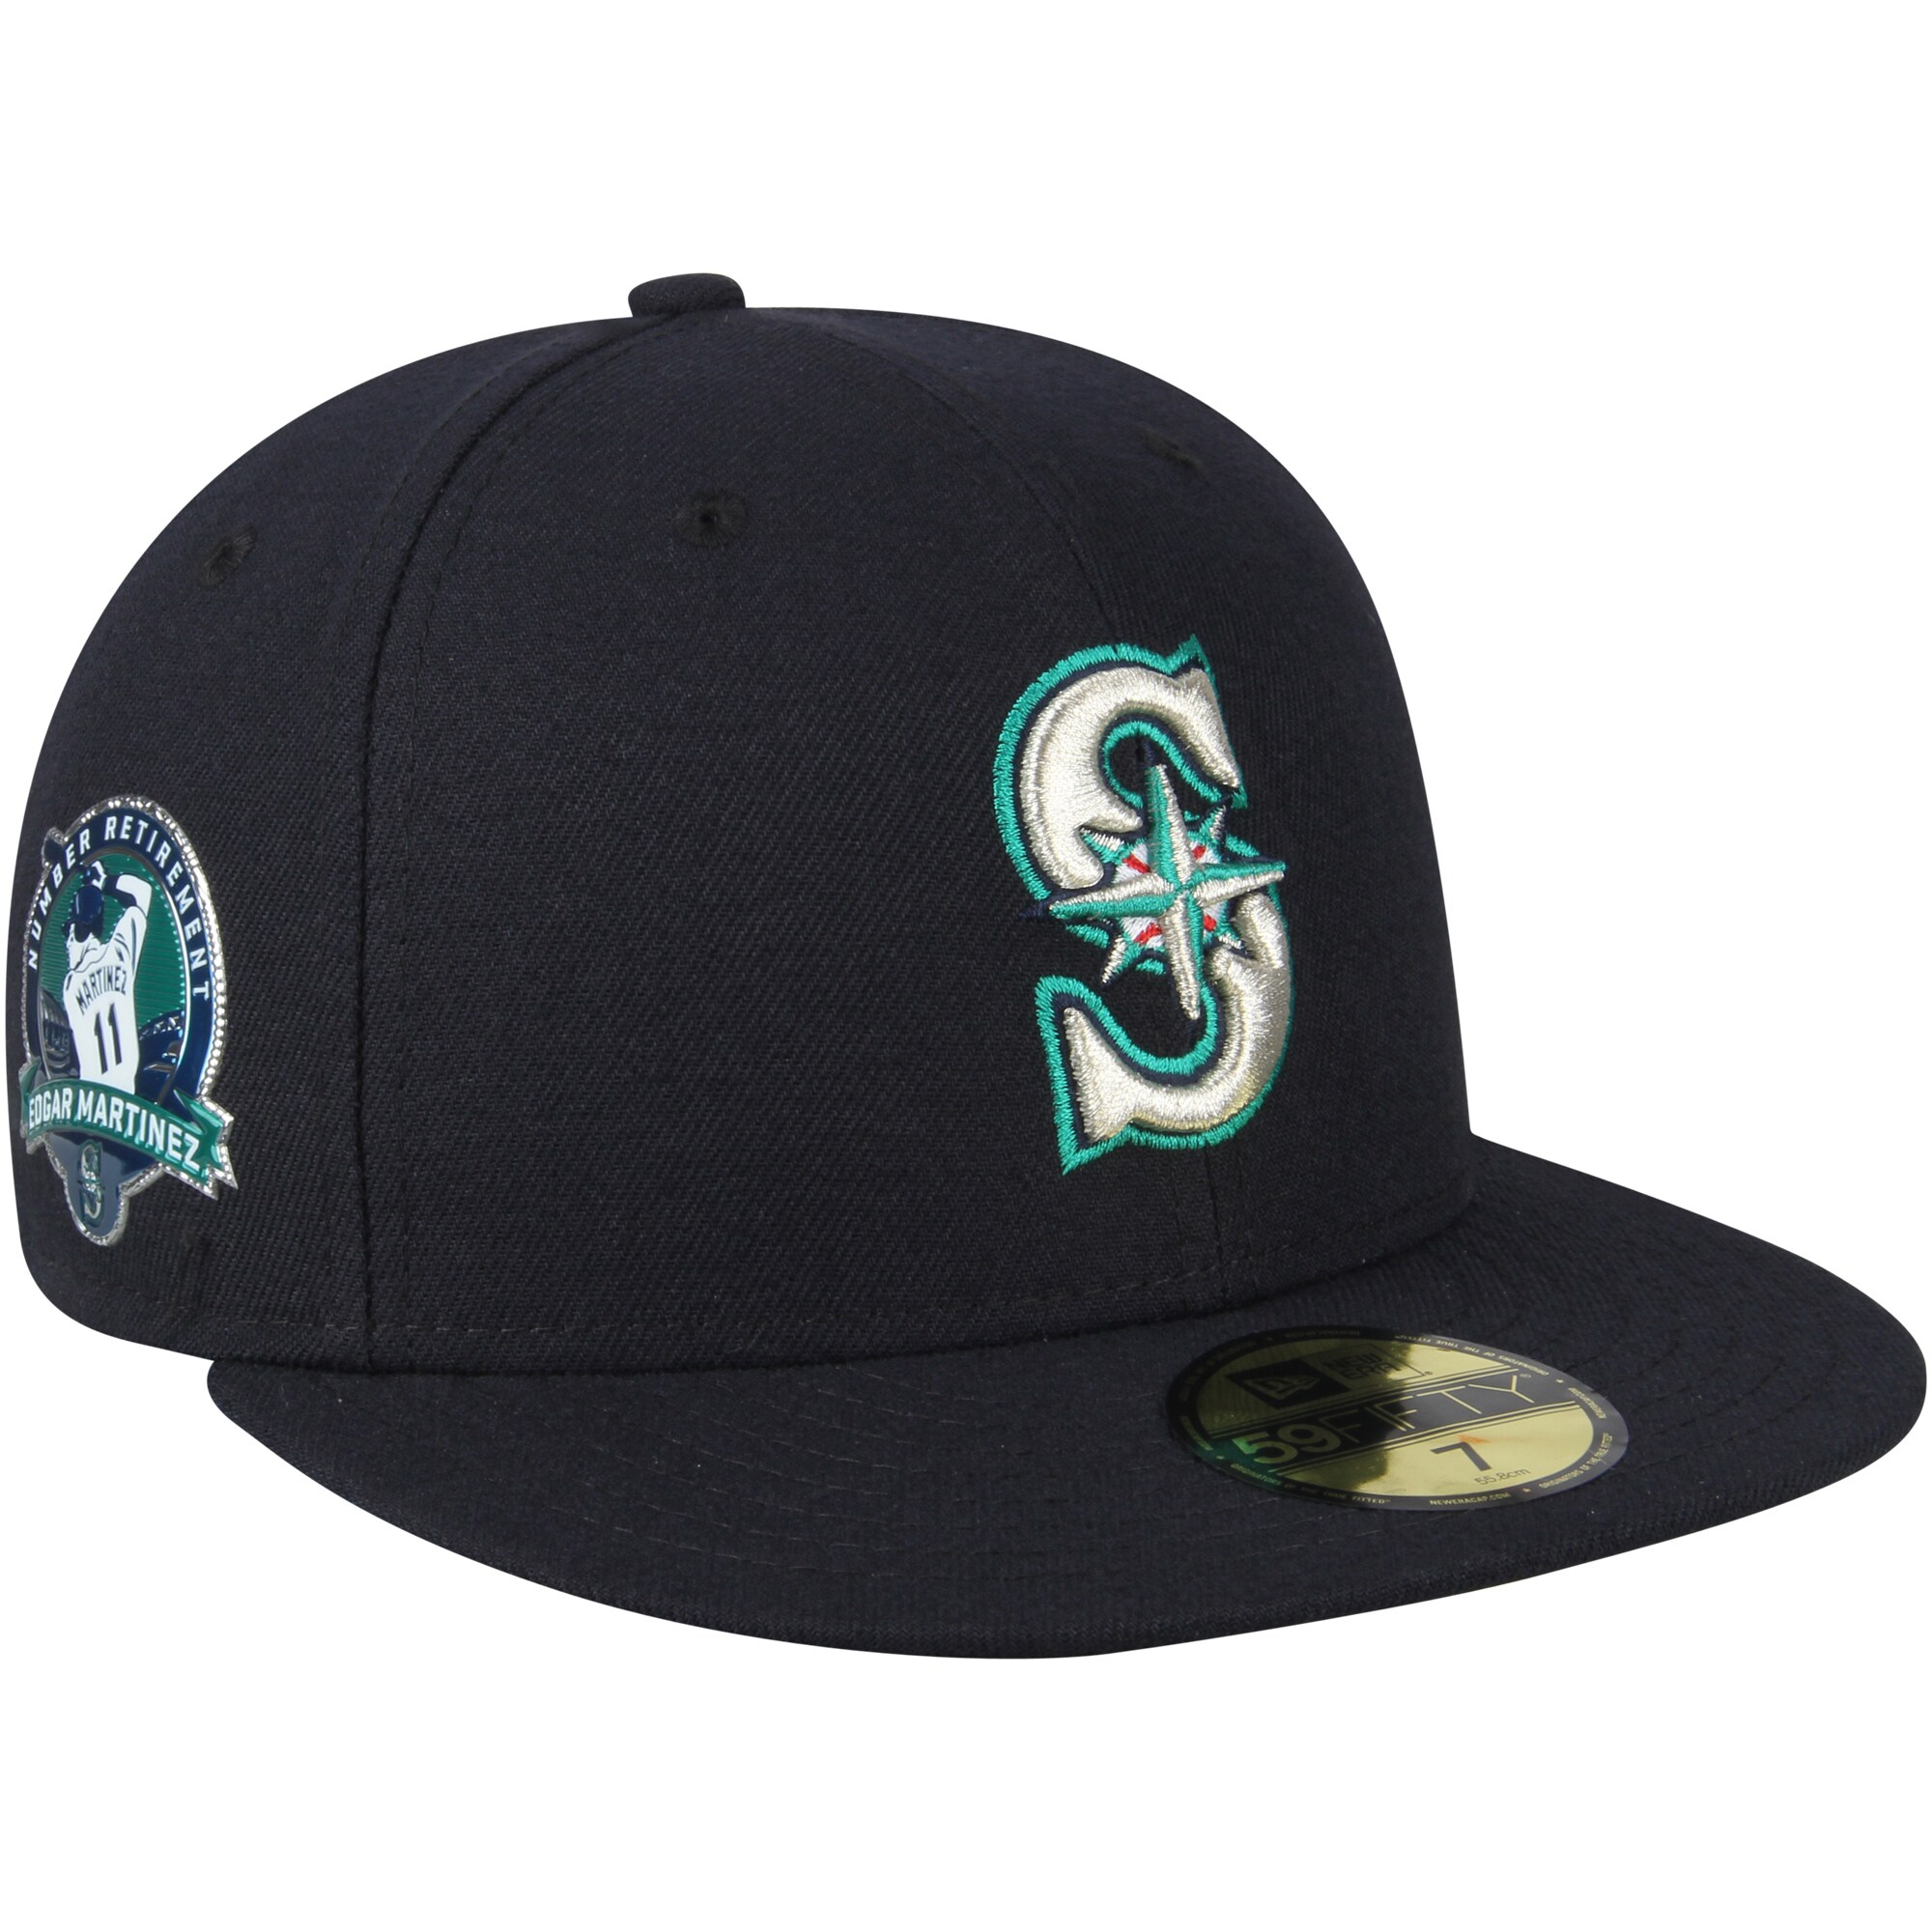 Edgar Martinez Seattle Mariners New Era Number Retirement 59FIFTY Fitted Hat - Navy